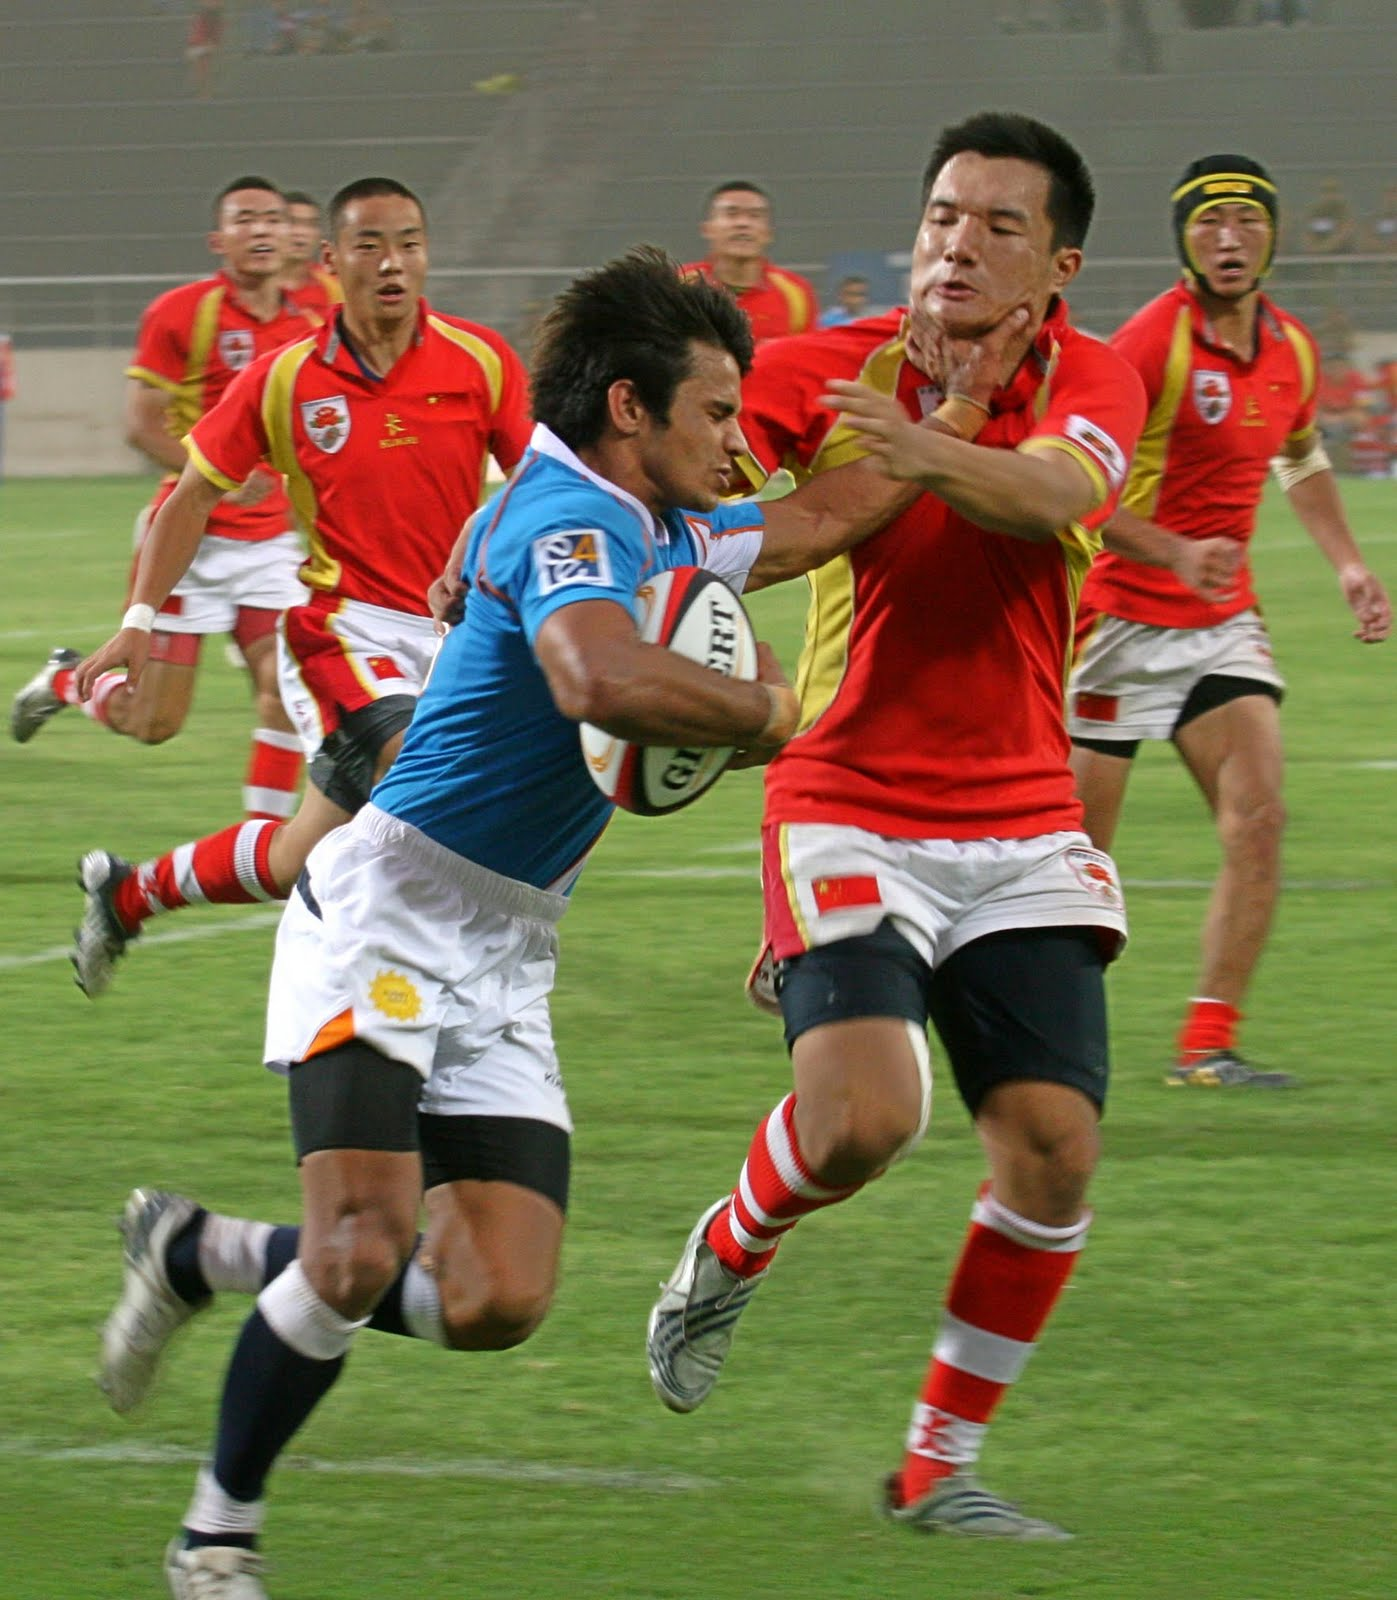 Delhi Commonwealth Games 2010: Asian Five Nation Rugby